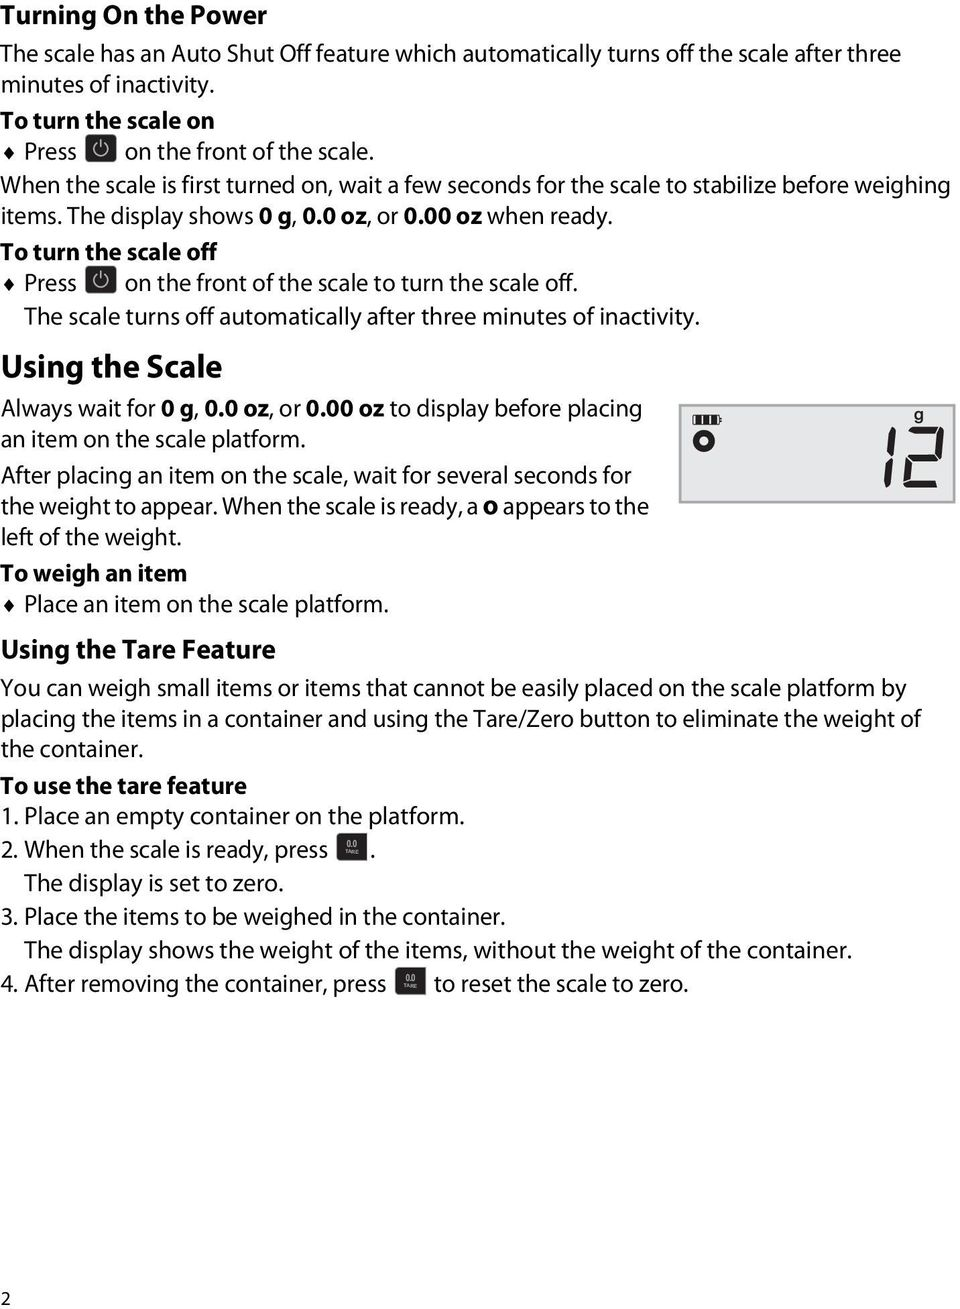 To turn the scale off Press on the front of the scale to turn the scale off. The scale turns off automatically after three minutes of inactivity.